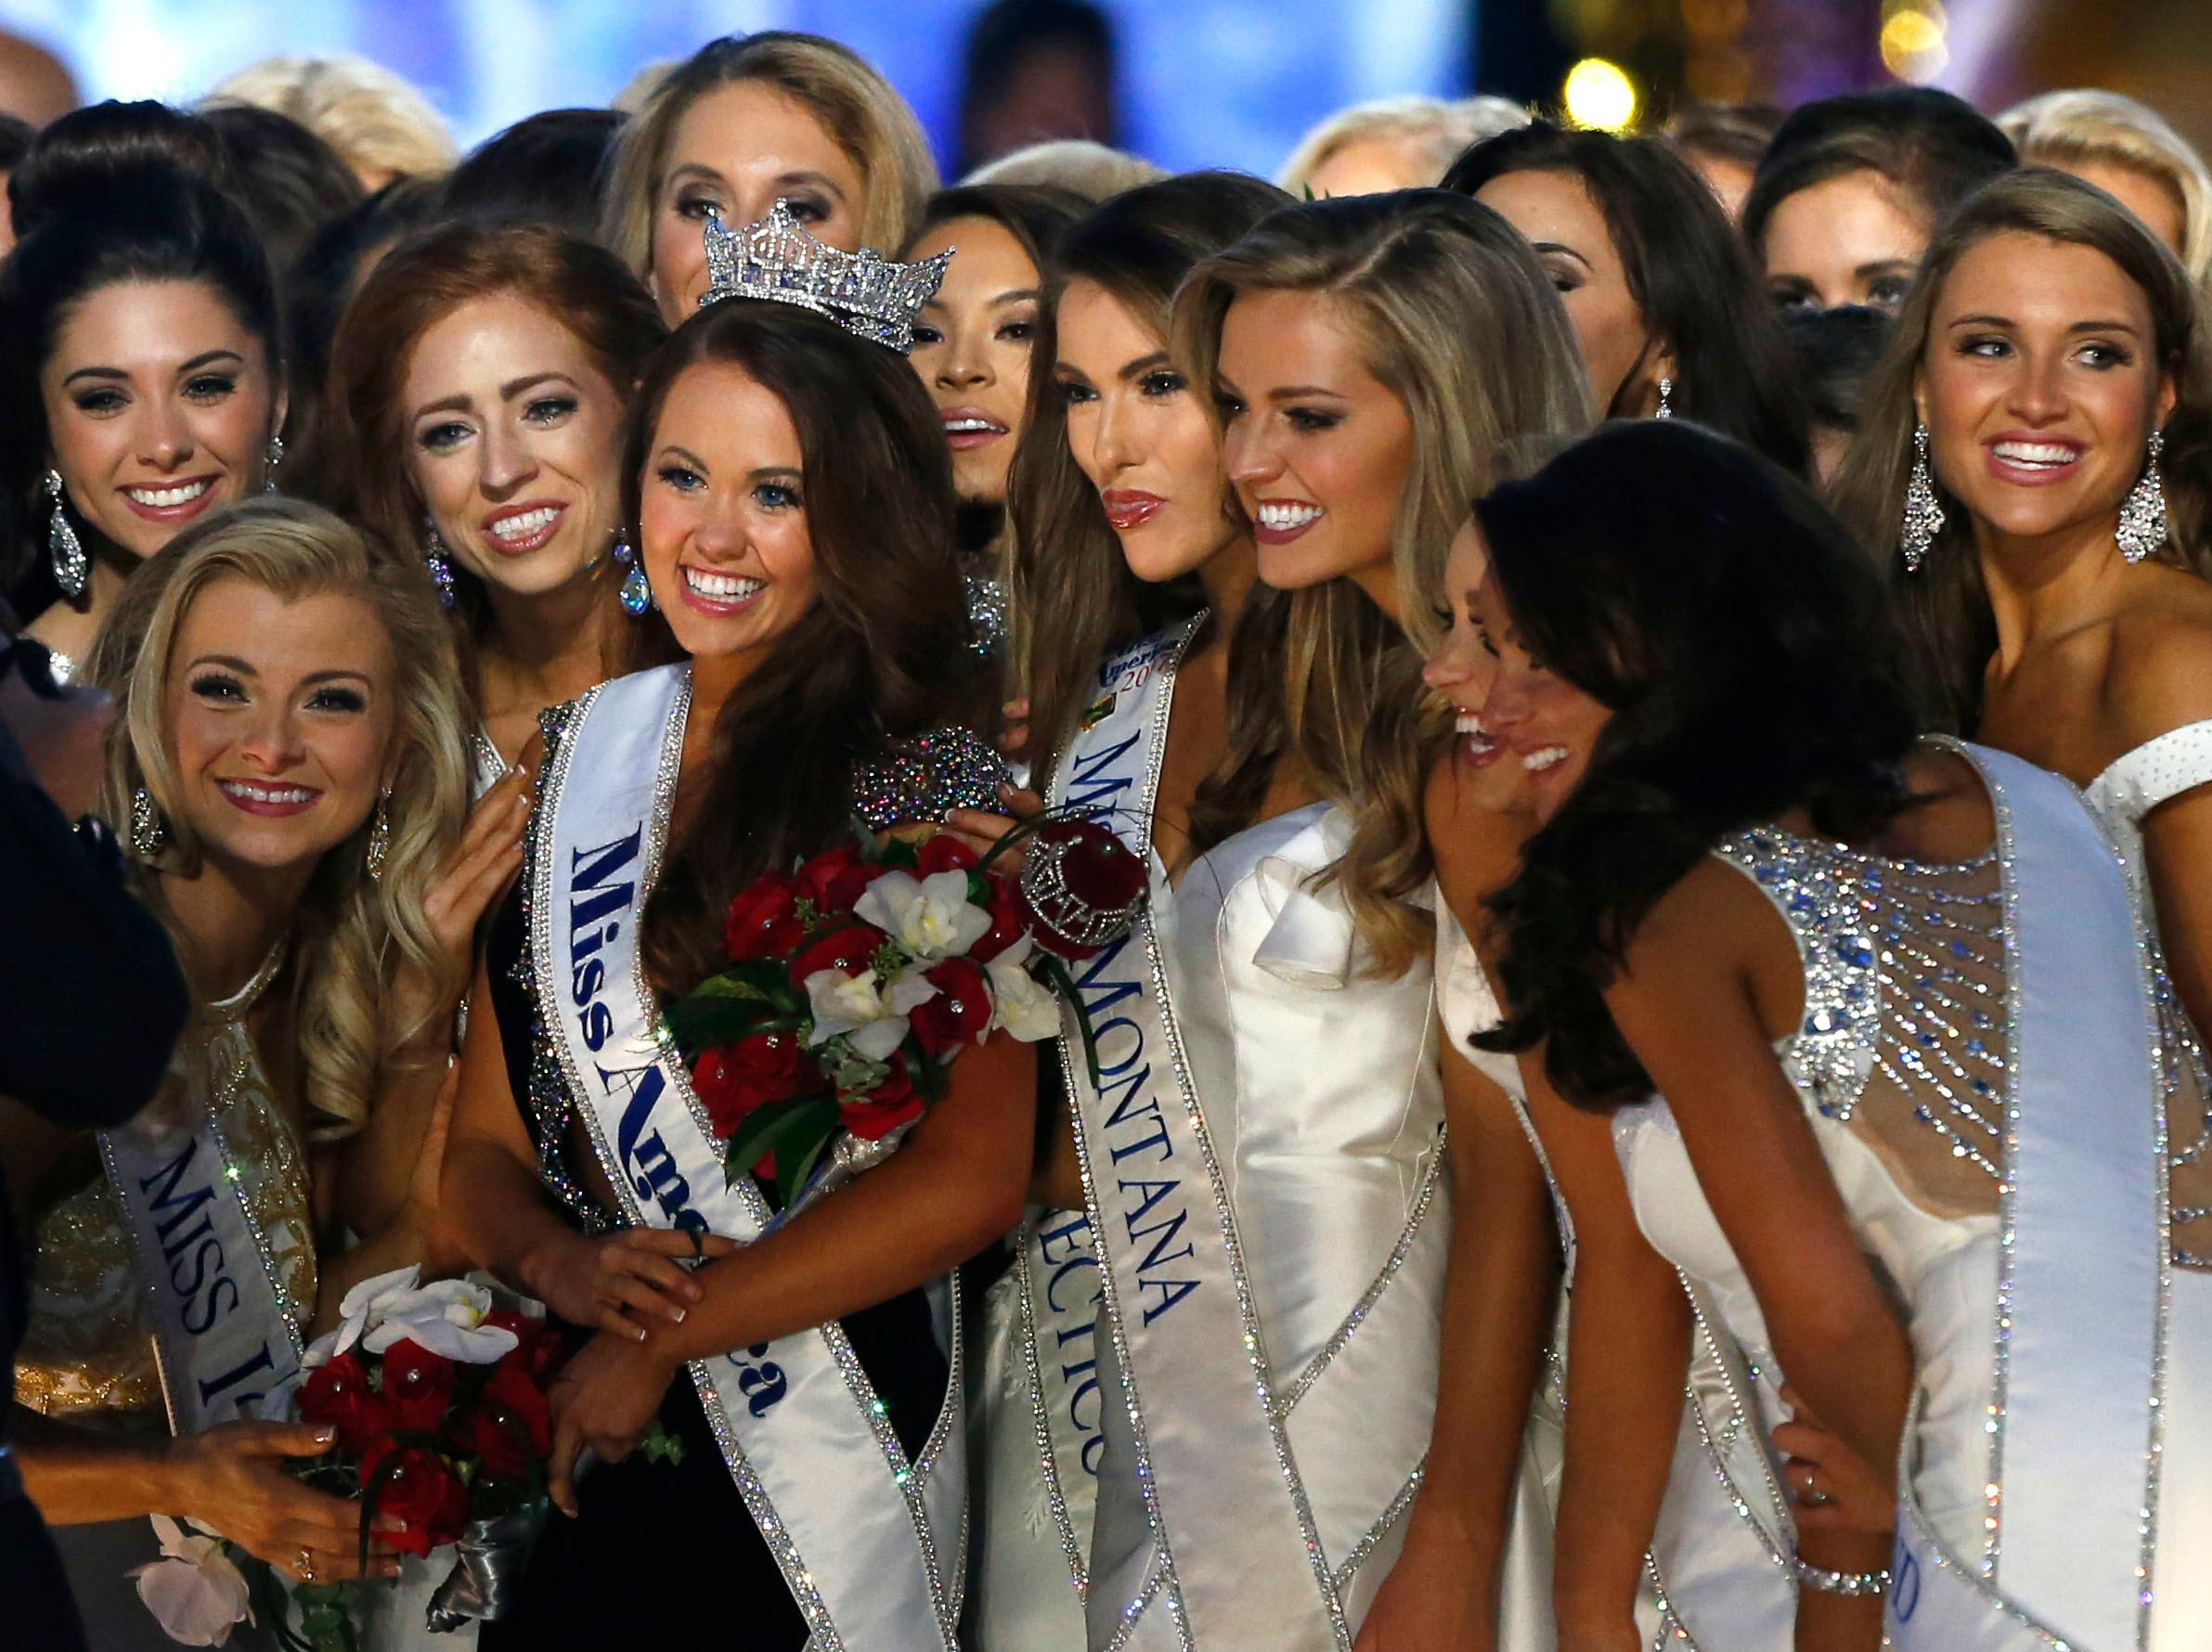 New Miss America Cara Mund, center left, with contestants during Miss America 2018 pageant, Sunday, Sept. 10, 2017, in Atlantic City, N.J. (AP Photo/Noah K. Murray)